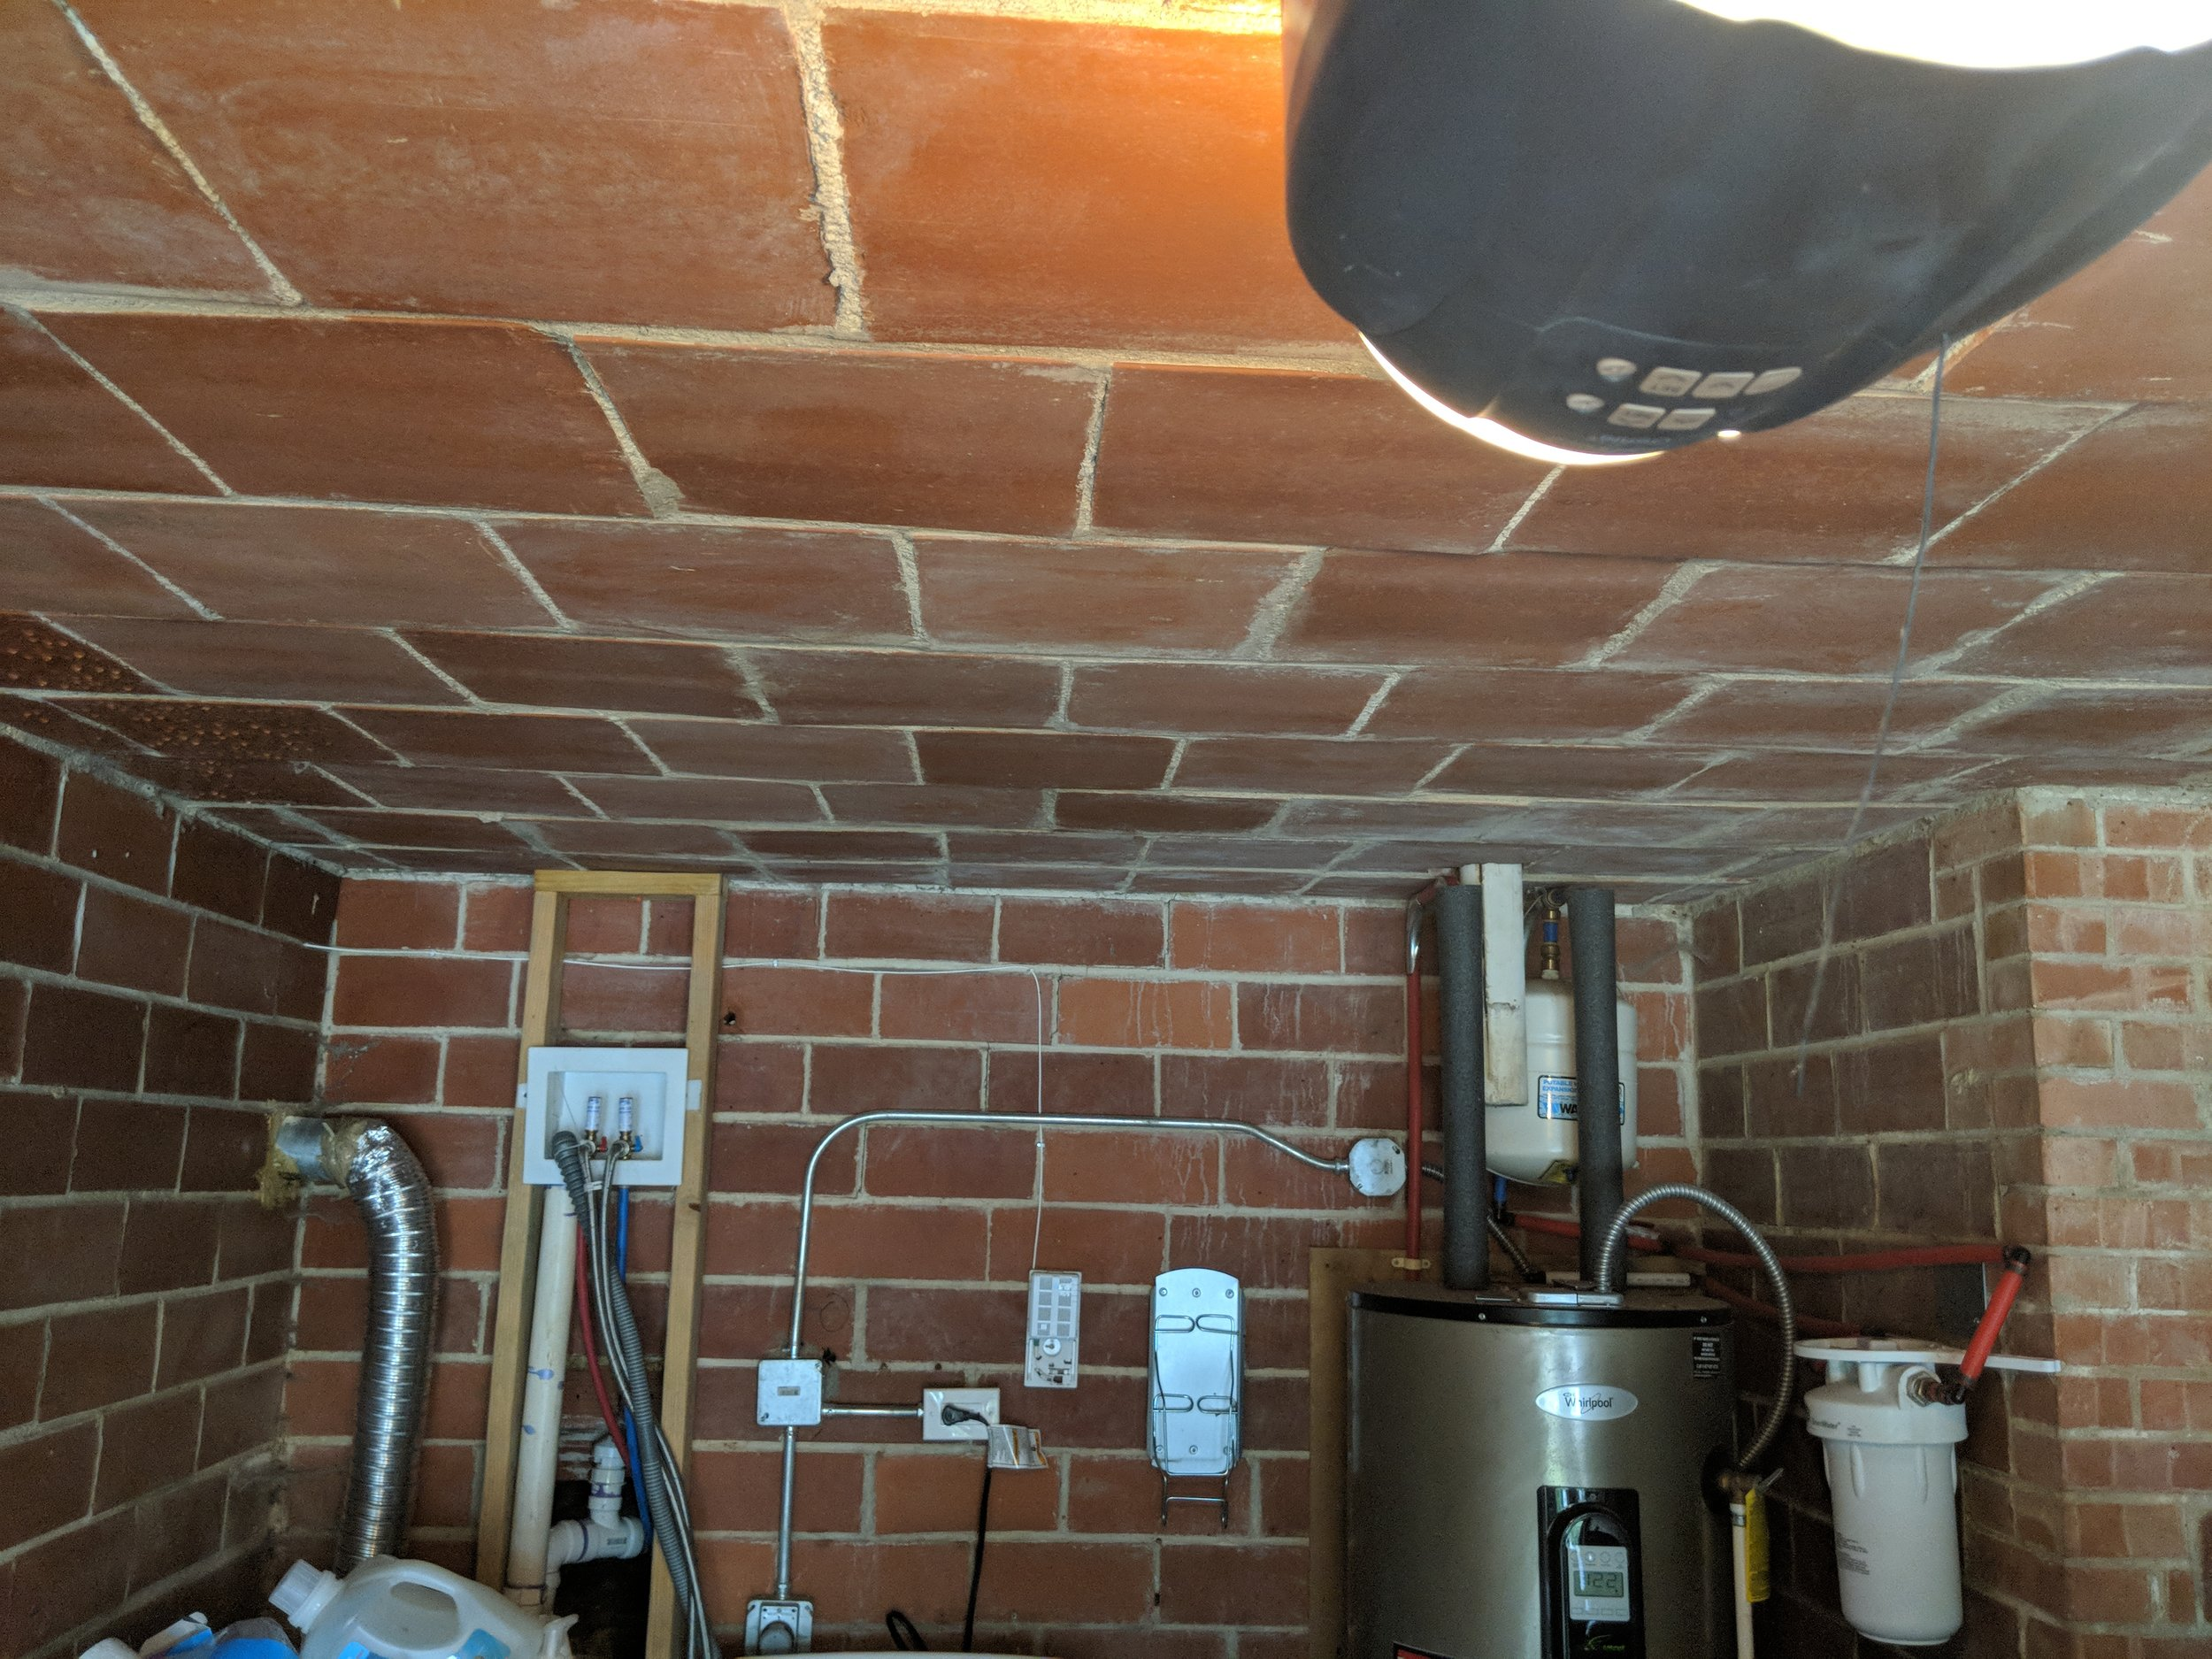 This is the garage ceiling and walls - no ribbing, the smooth side is turned out as there is no finish layer applied.